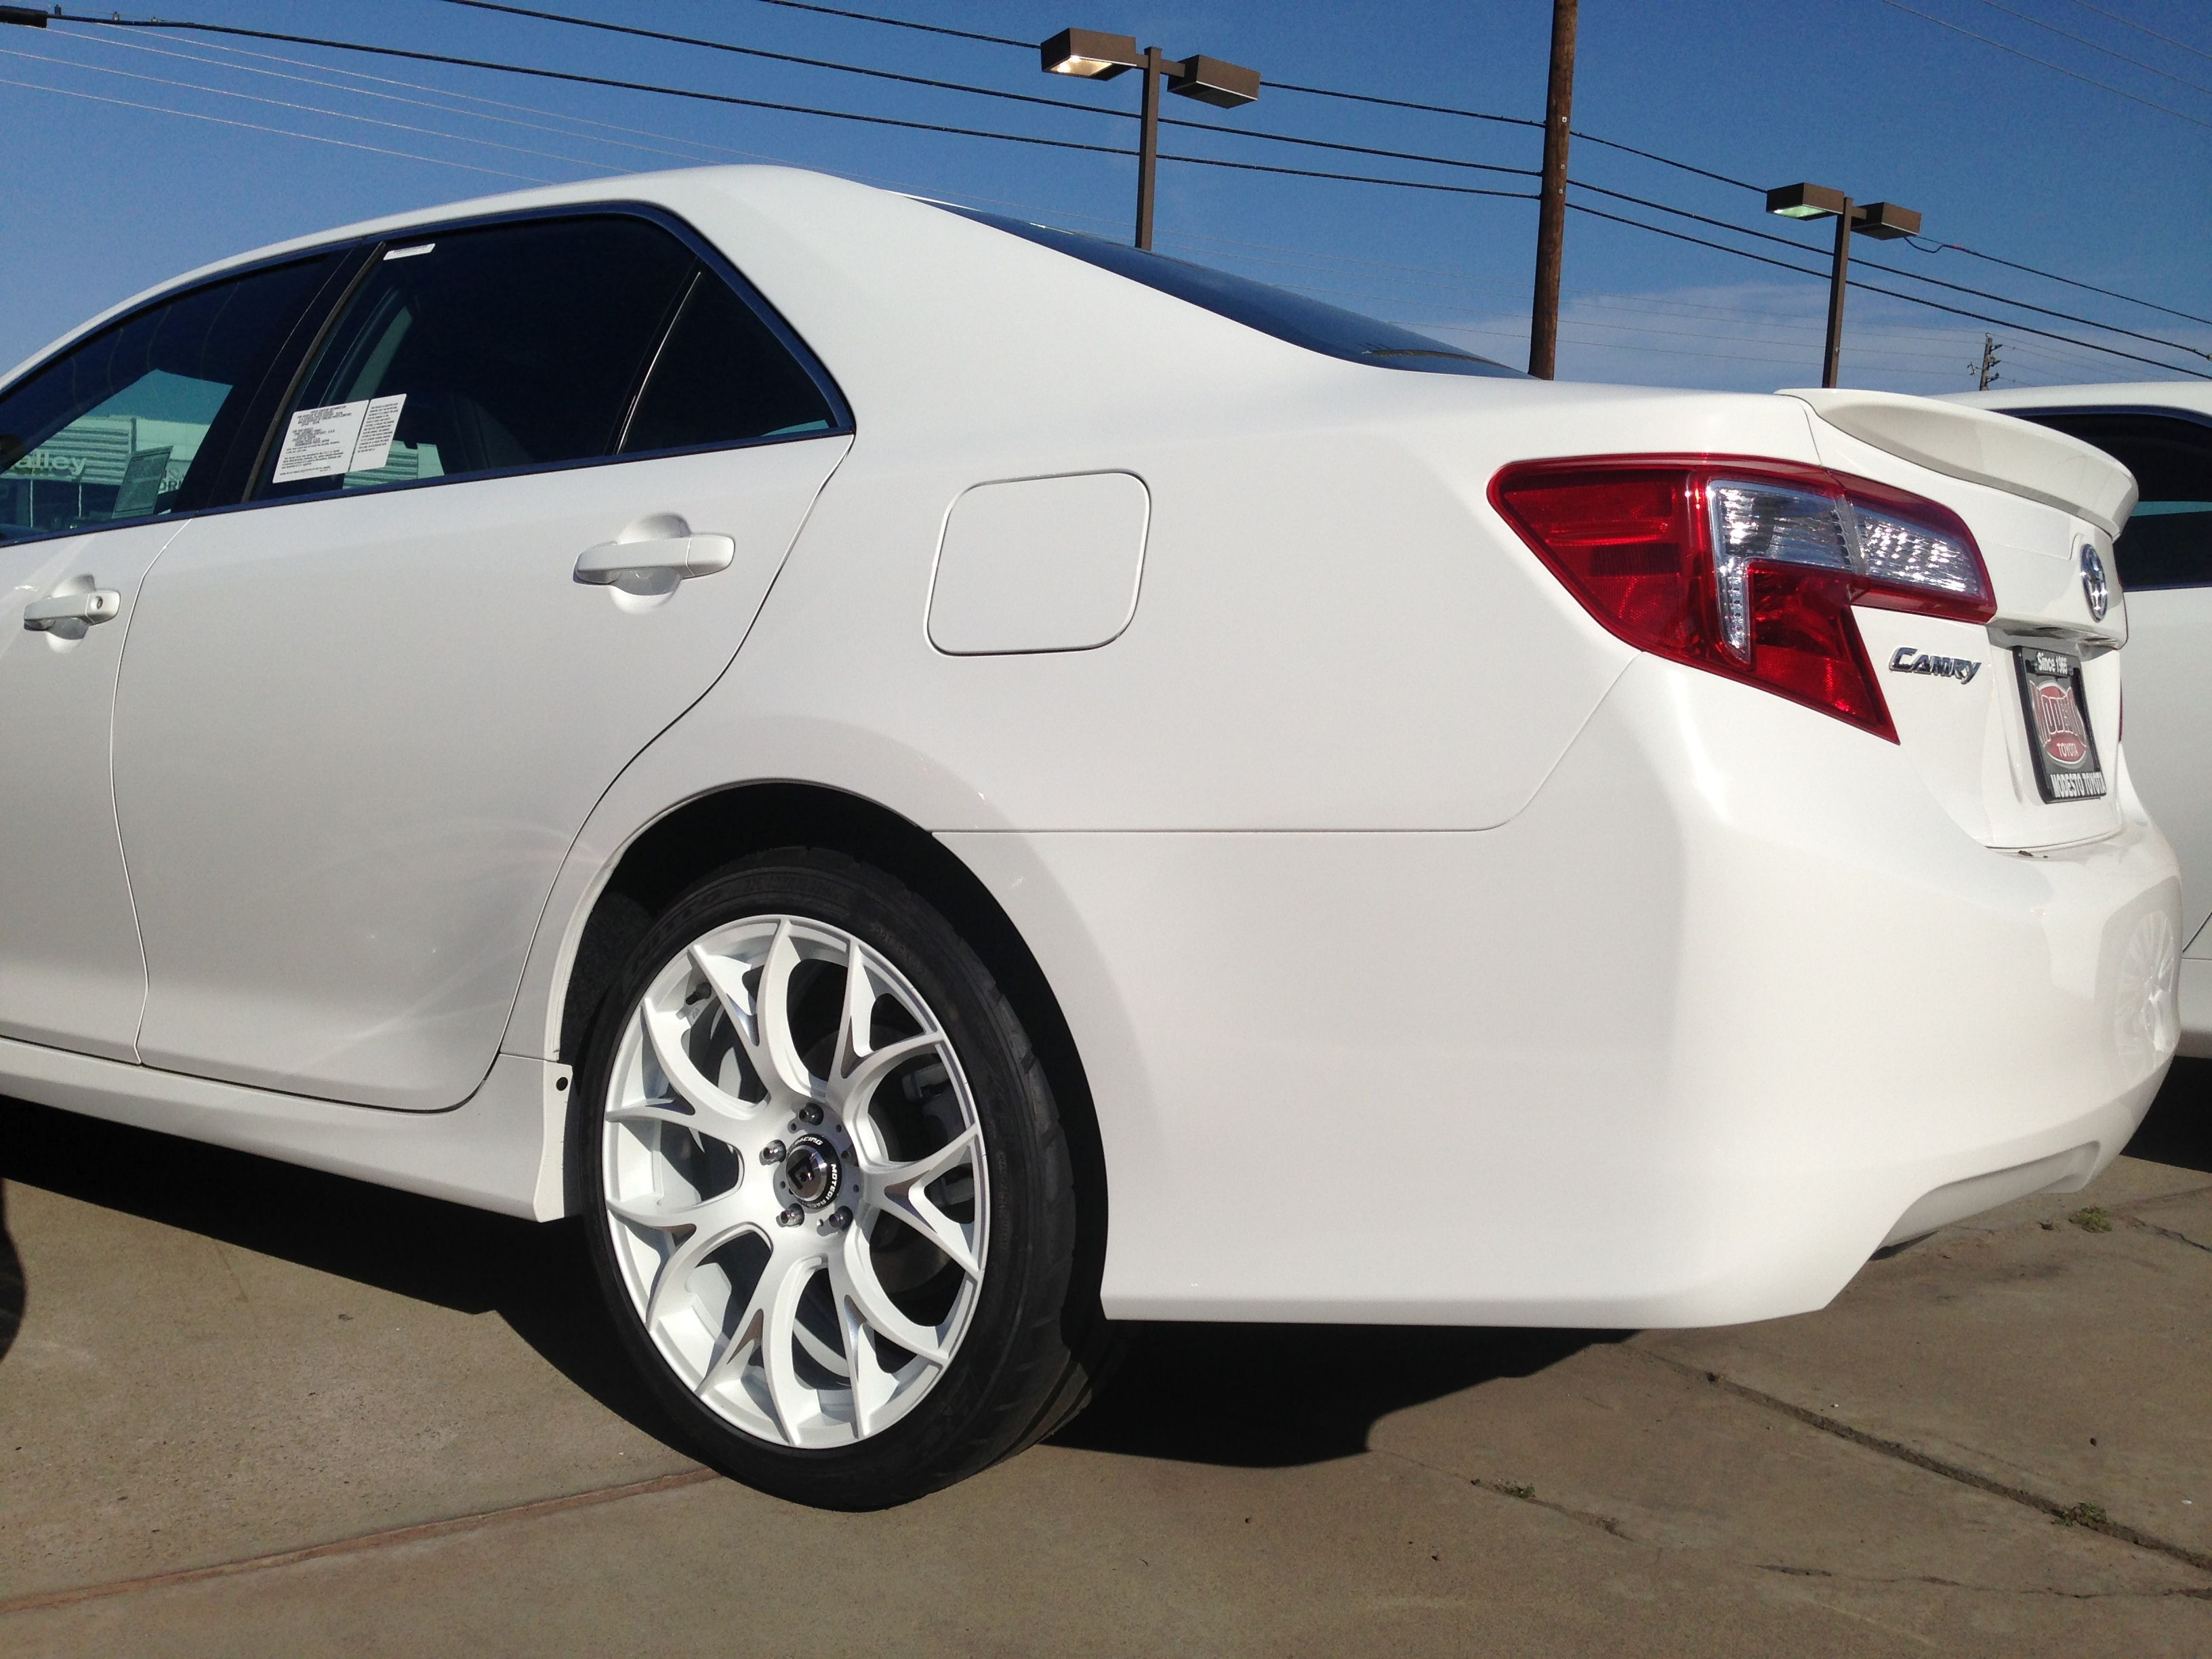 acf66cb57e5ddc746c0bf63276e29251 Wonderful Kelley Blue Book 2006 toyota Camry Cars Trend